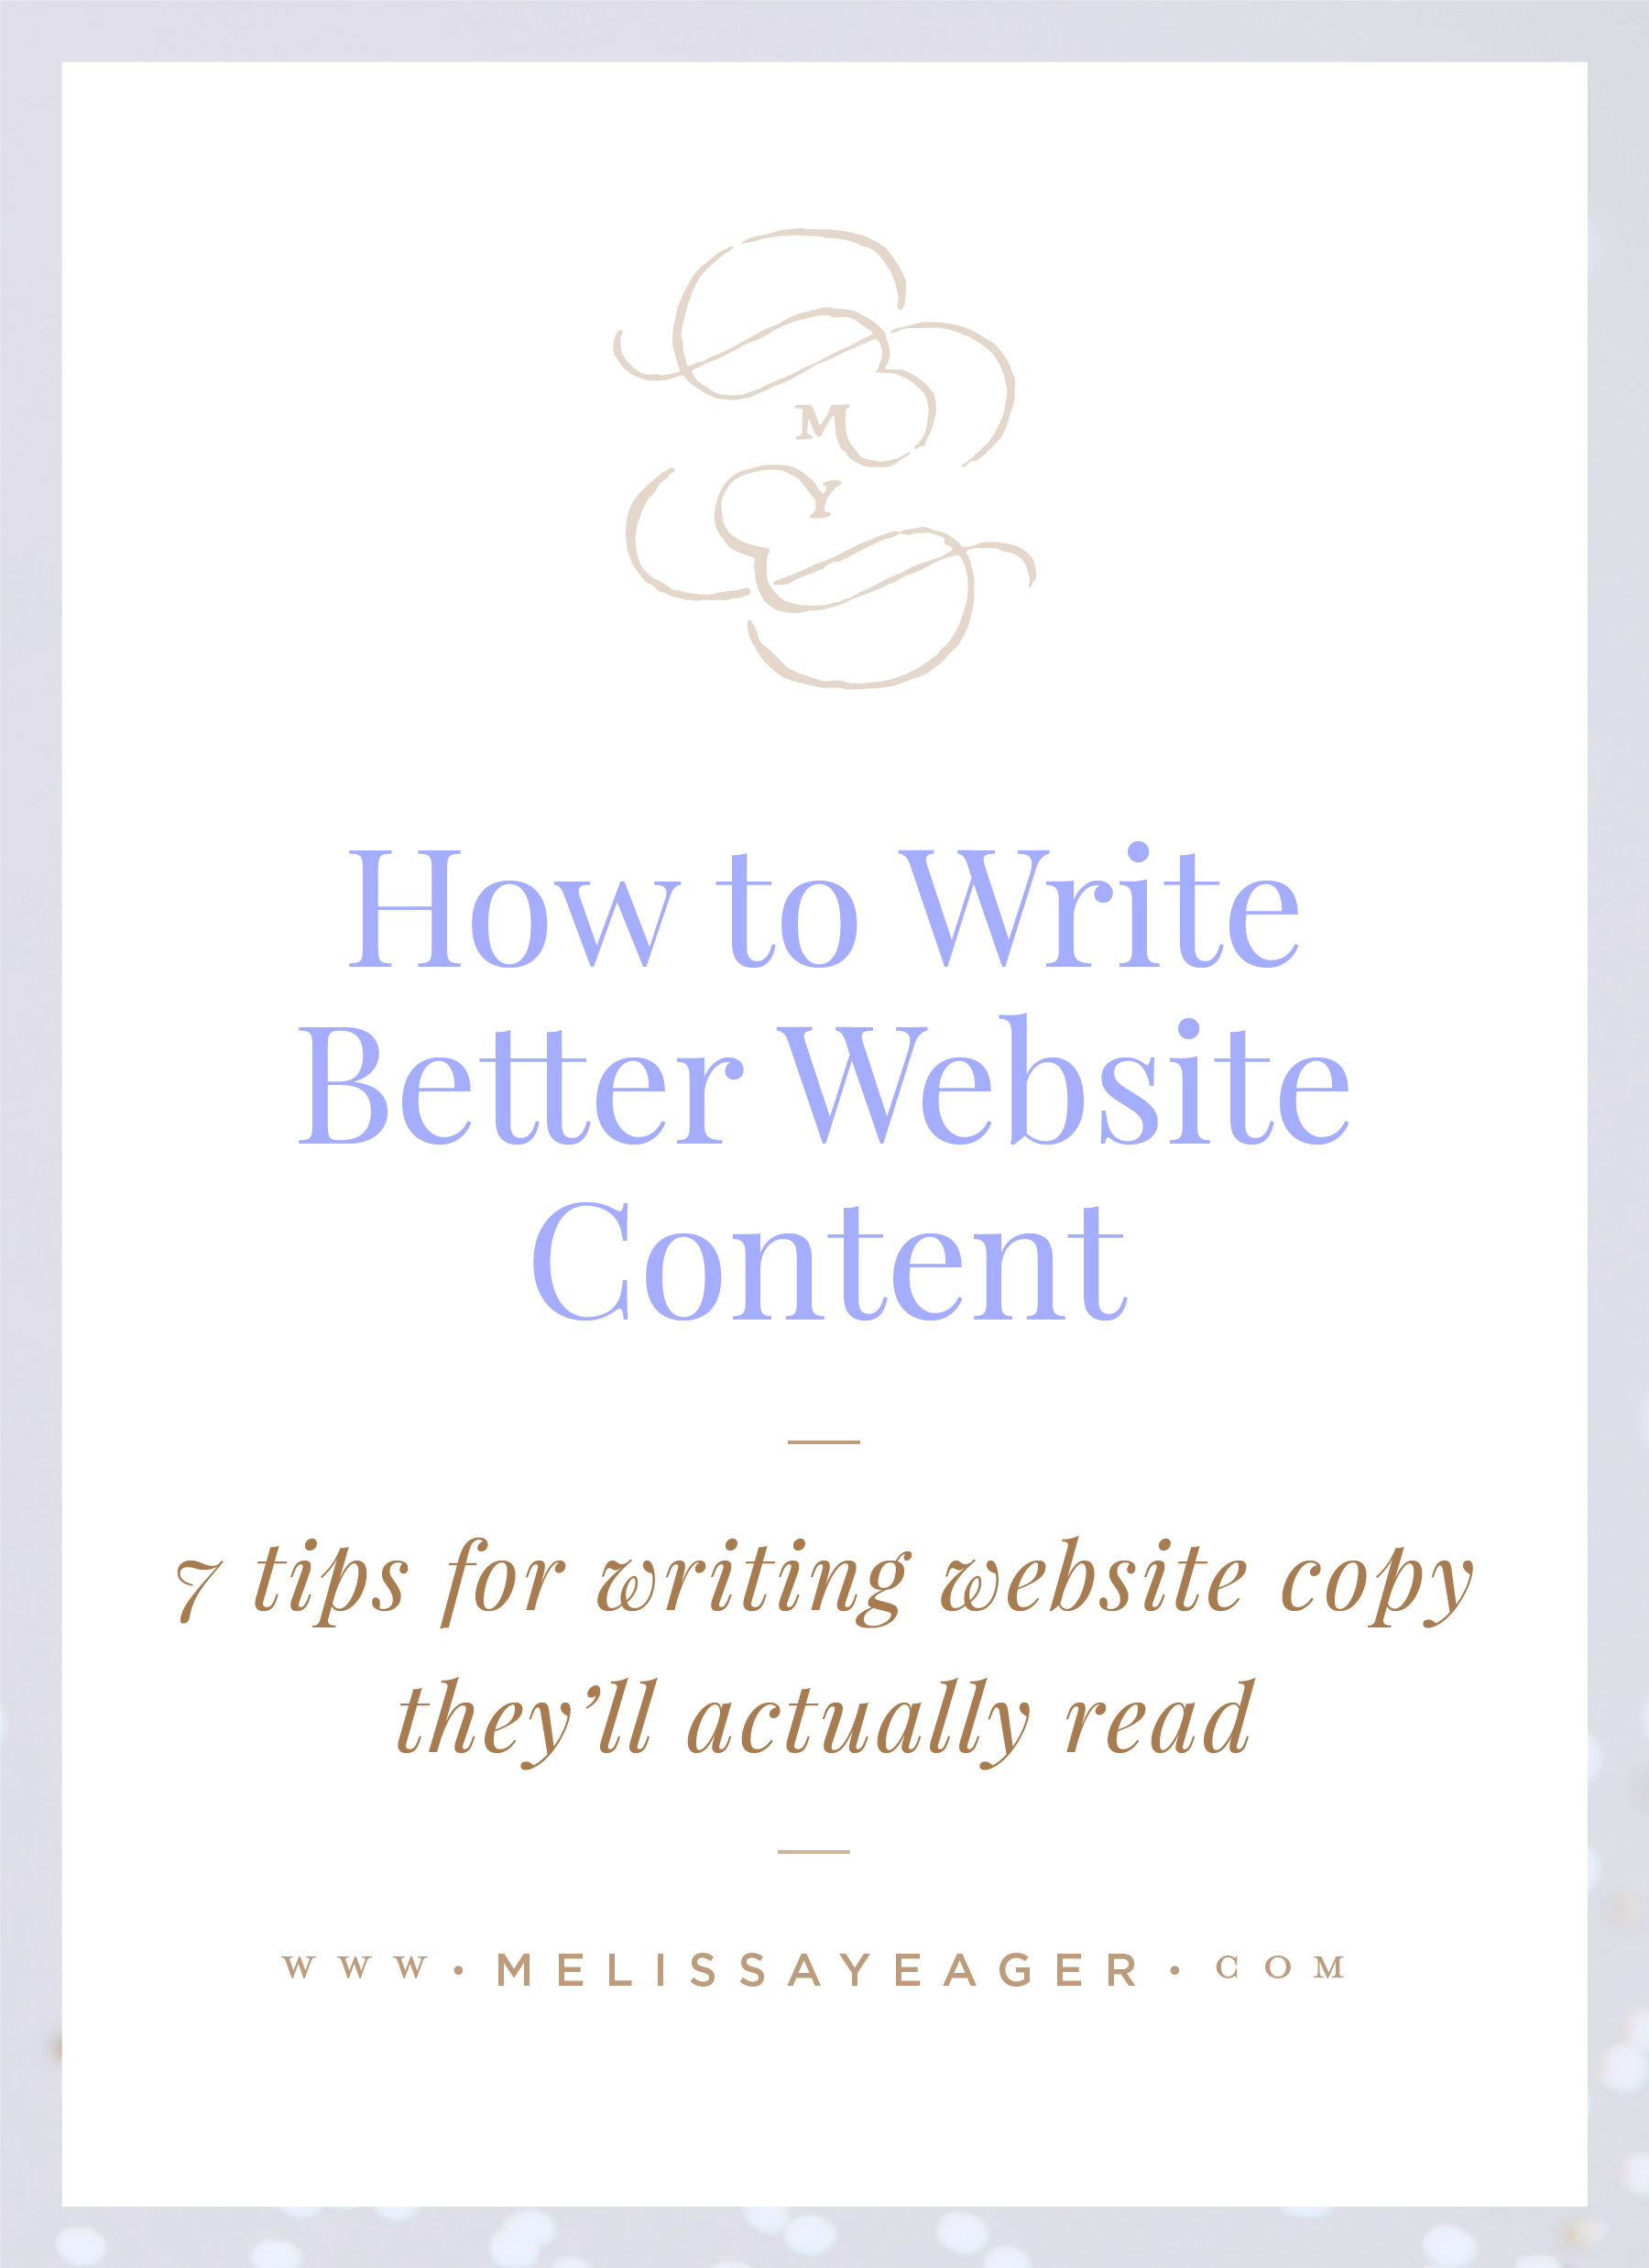 How to Write Better Website Content - 7 tips for writing website copy they'll actually read from Melissa Yeager